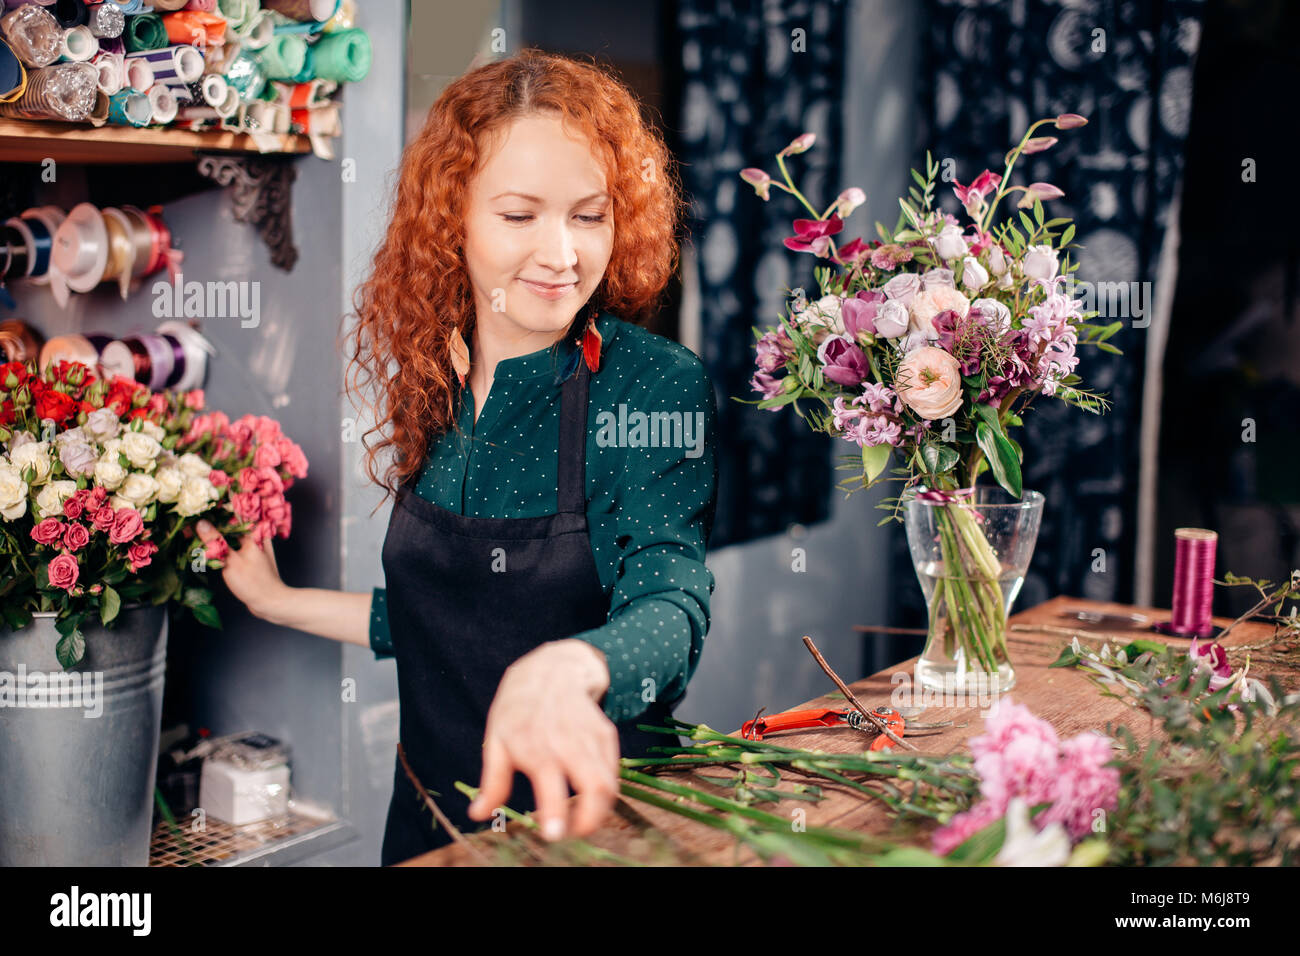 snapshot of good-looking floral assistant counting flowers for bouquet - Stock Image